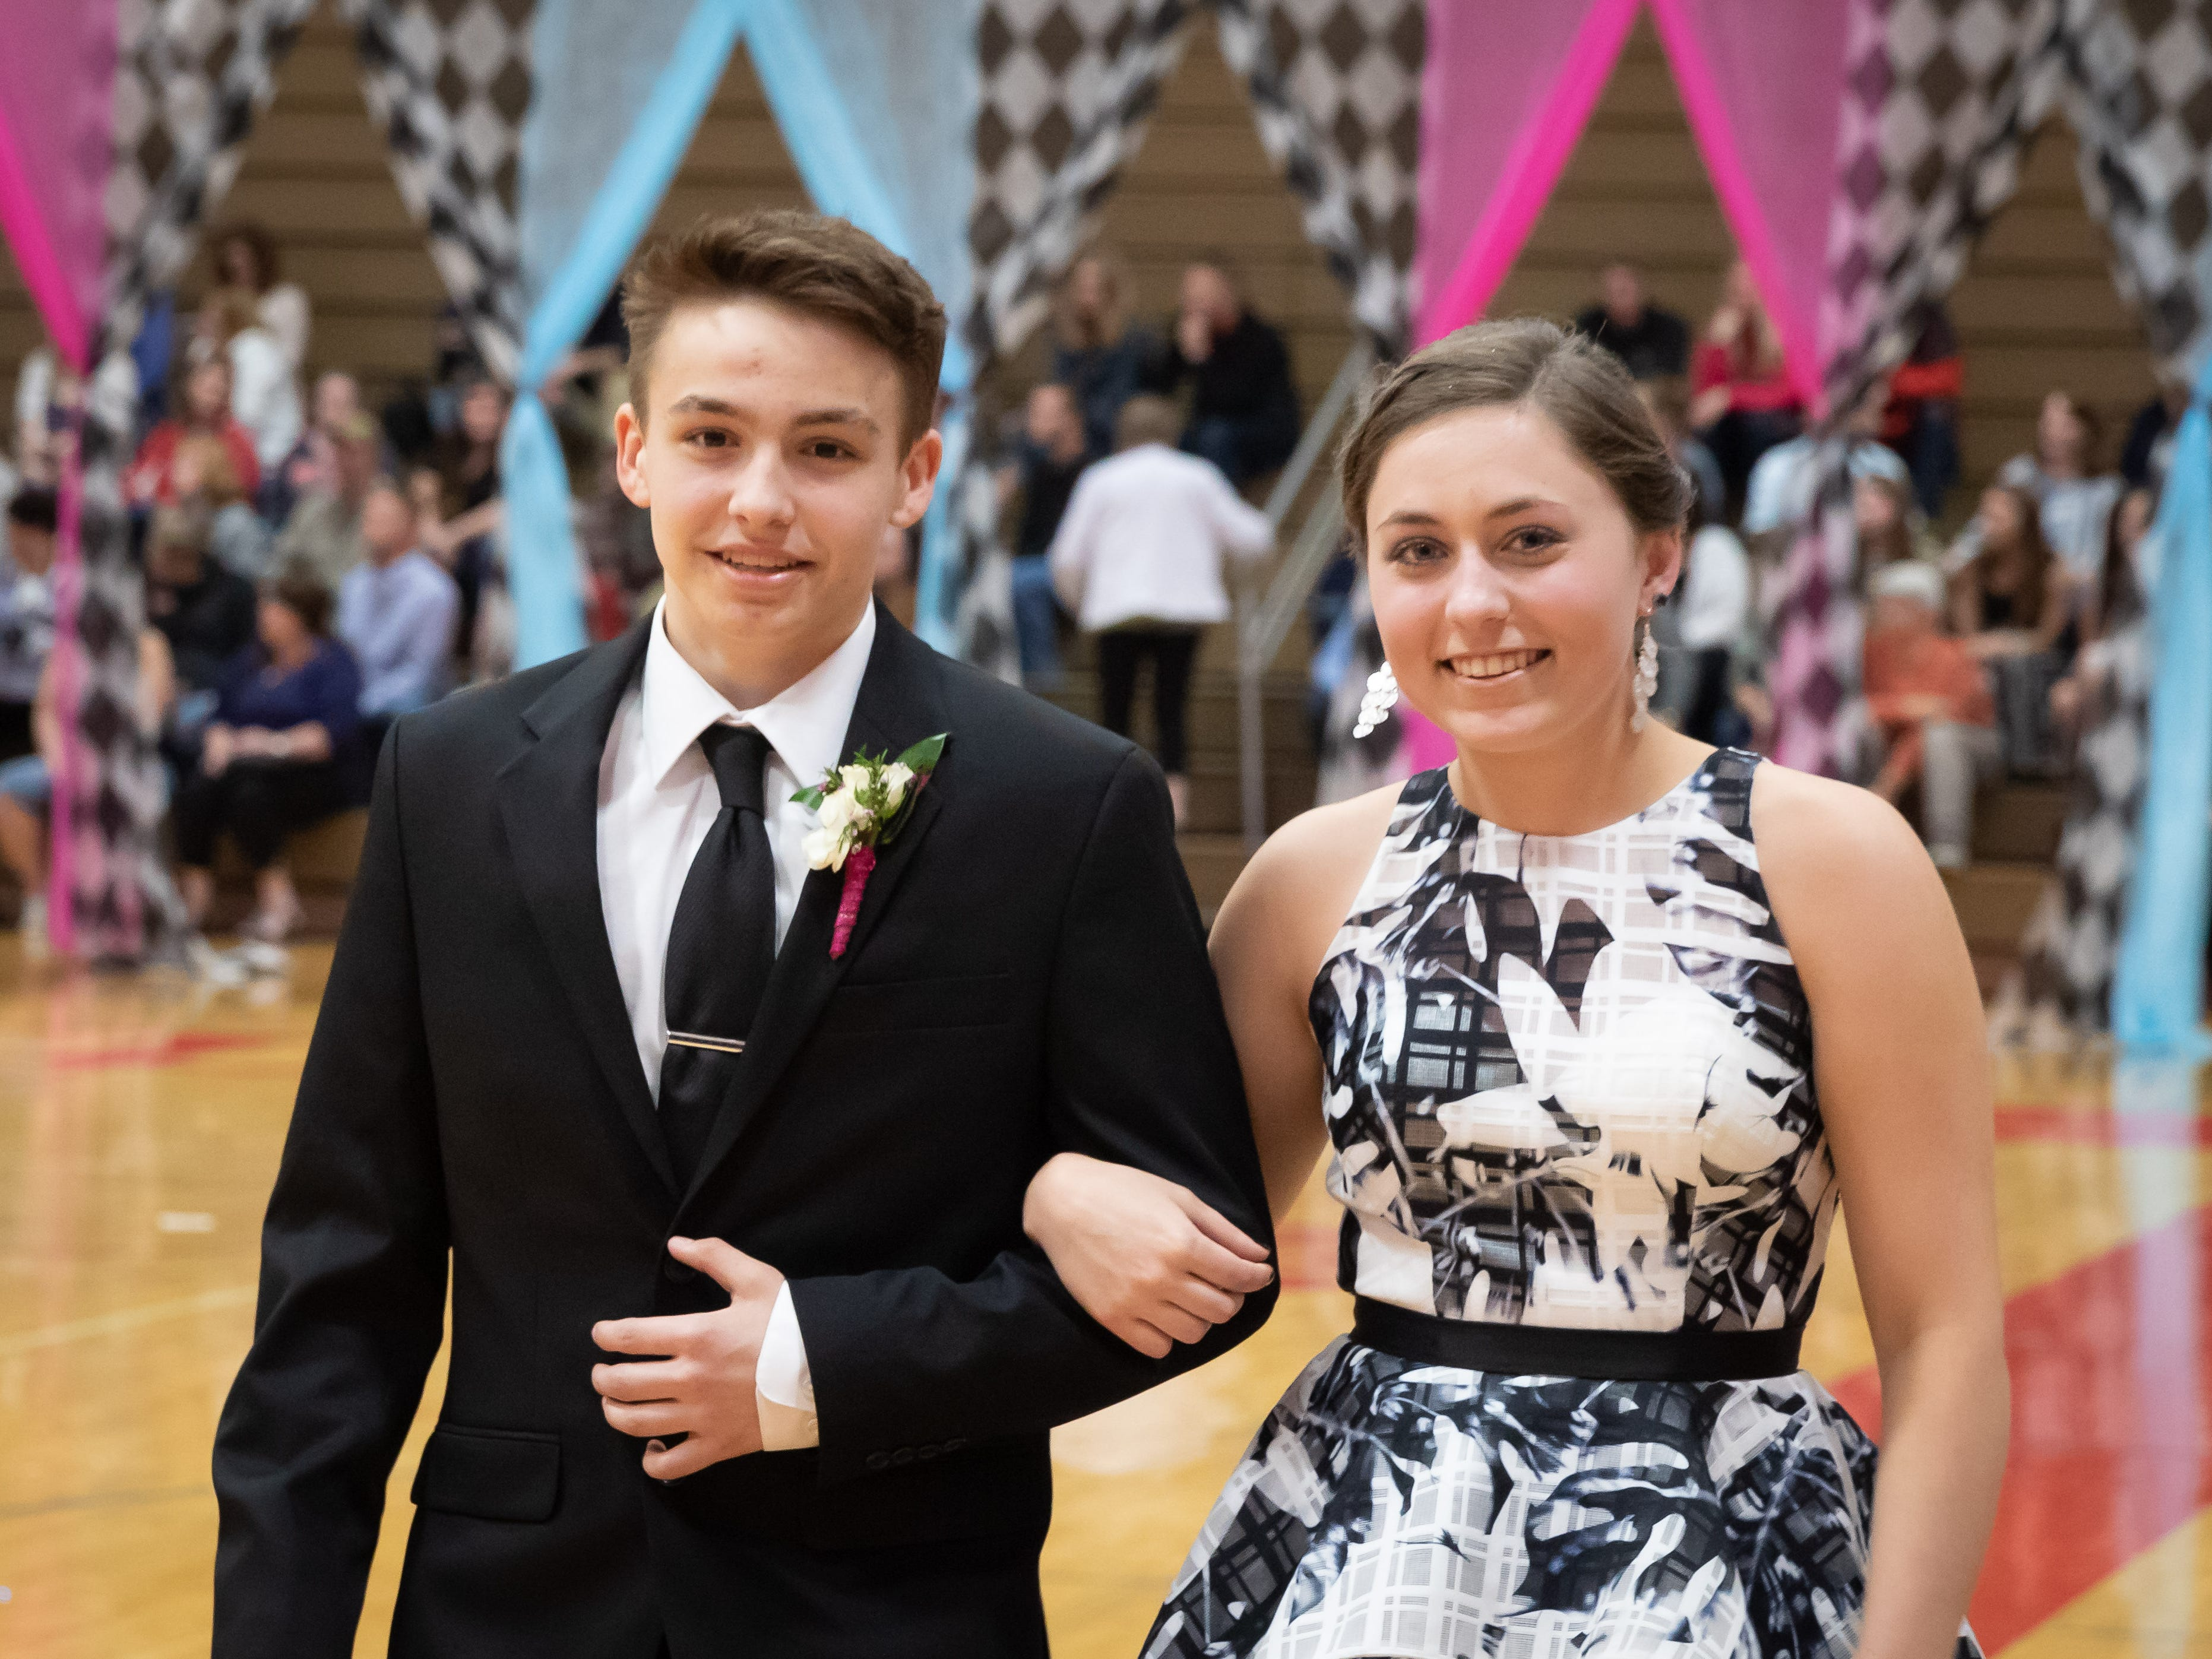 Students participate in the grand march during the Lincoln High School prom on Saturday, May 4, 2019, at the high school in Wisconsin Rapids.